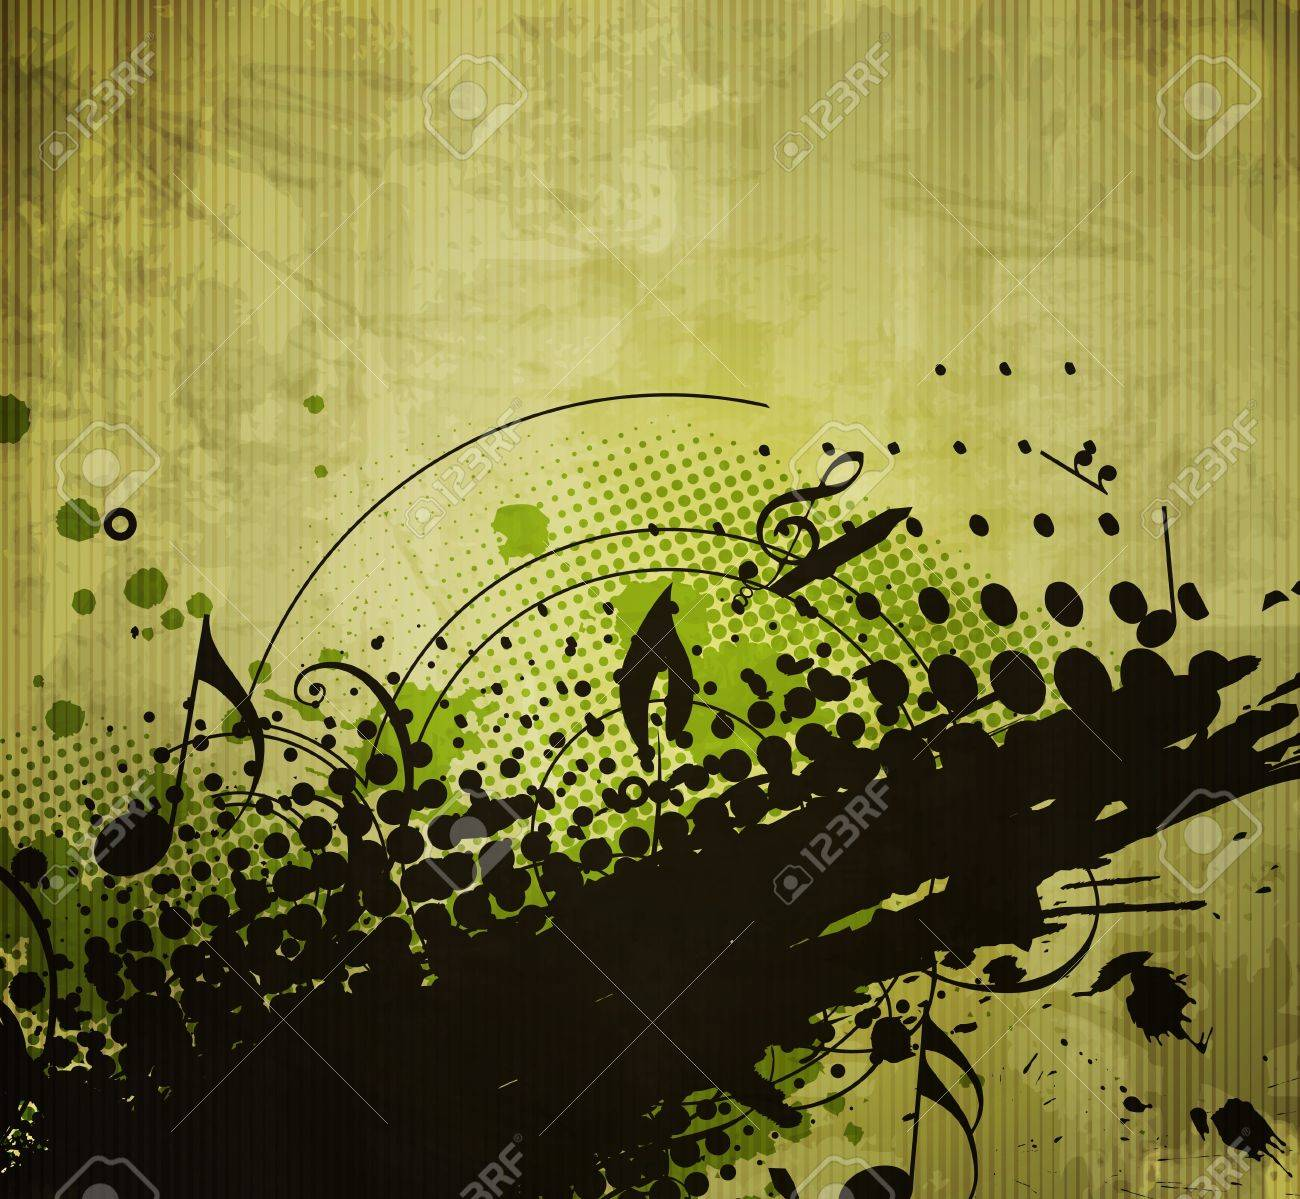 abstract floral & grunge design, vector background Stock Vector - 11218942